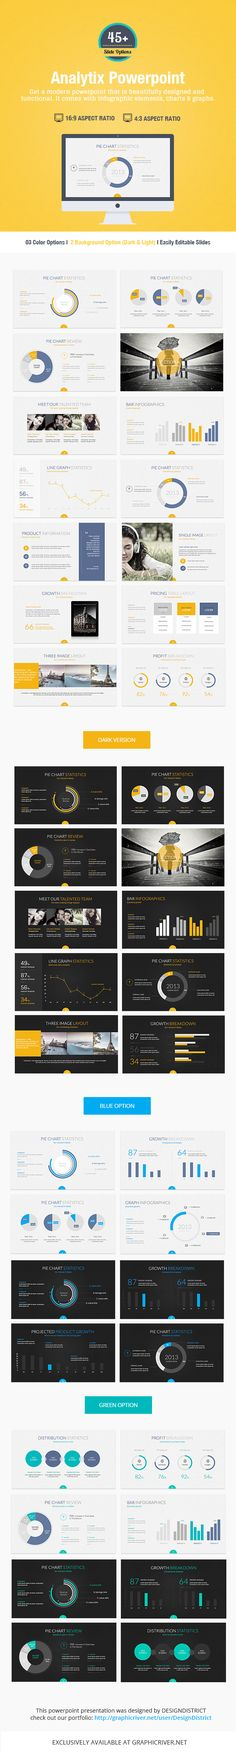 Analytix Powerpoint by Design District, via Behance